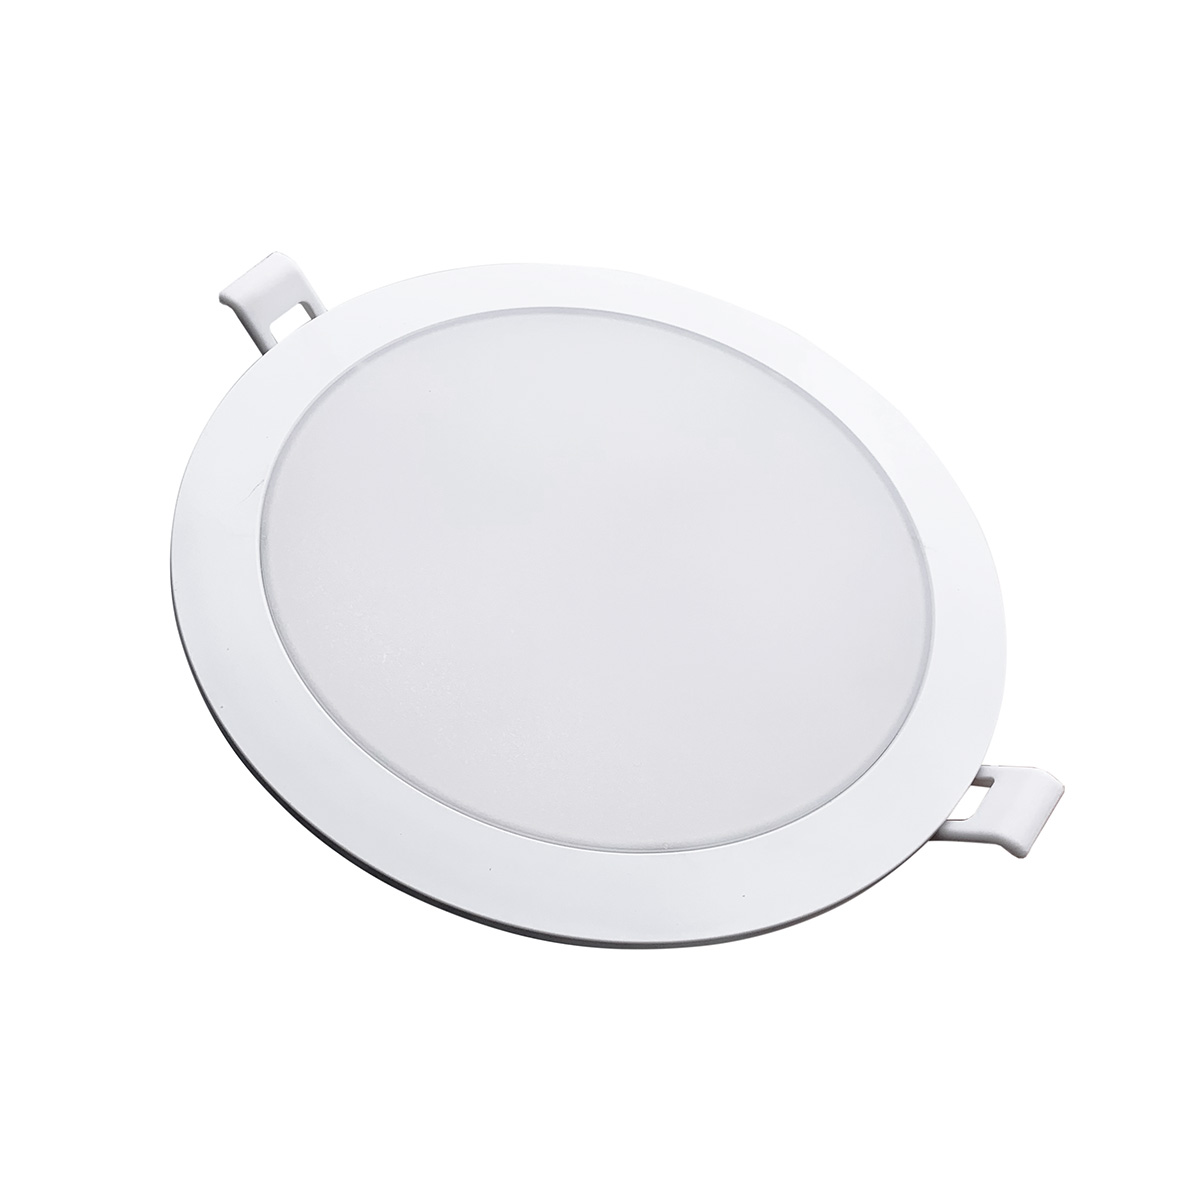 Spotlight, LED recessed 18W 220v round diameter 170mm driver integrated DL6